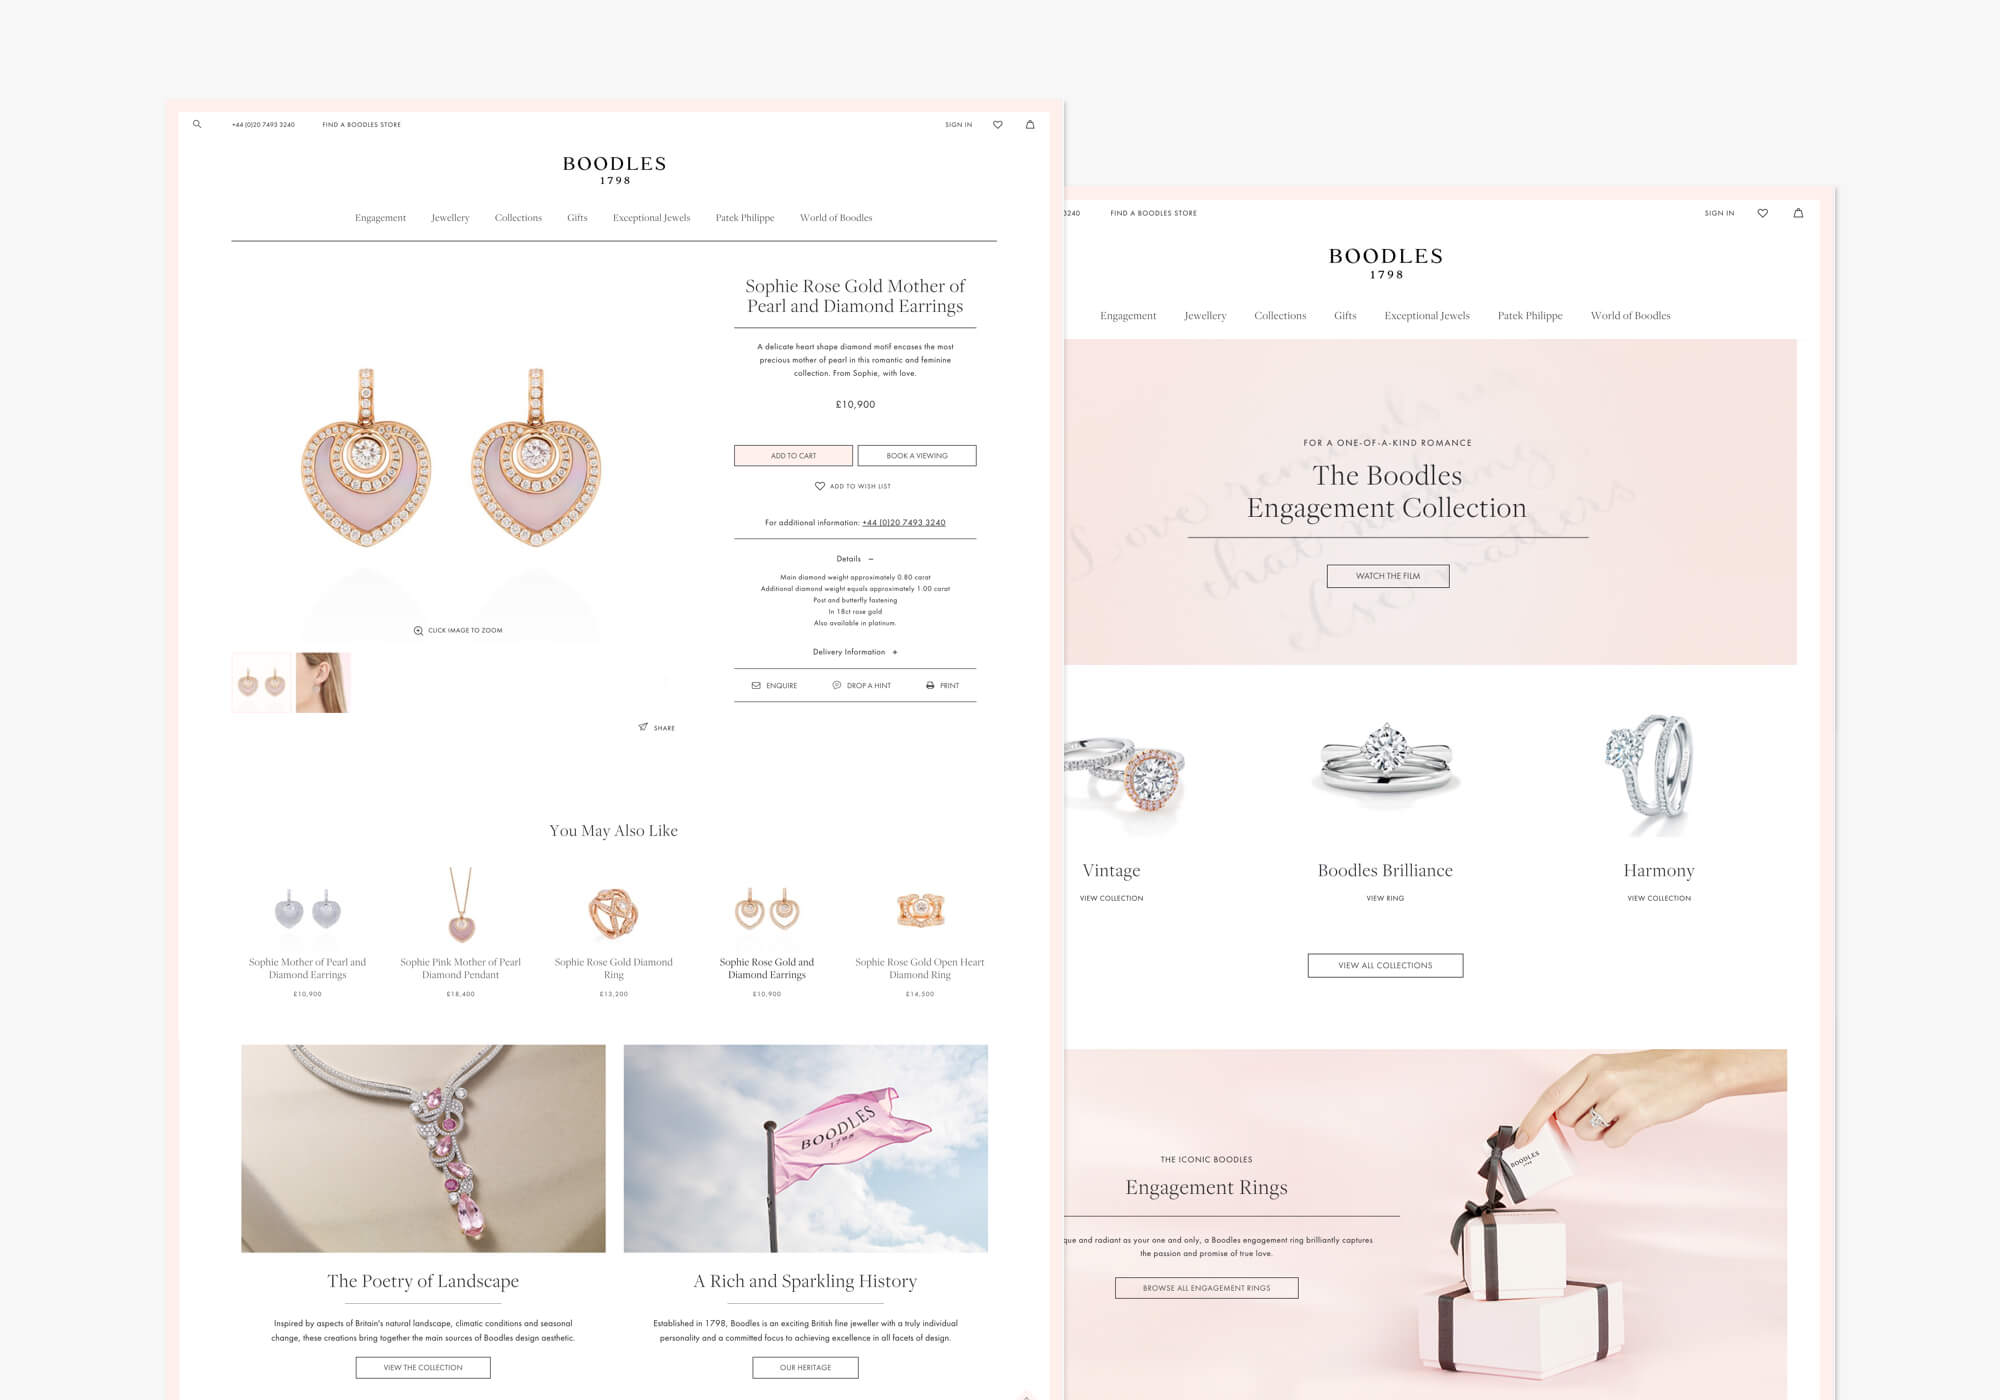 Boodles product page - Finalist Imagine Excellence Awards 2018